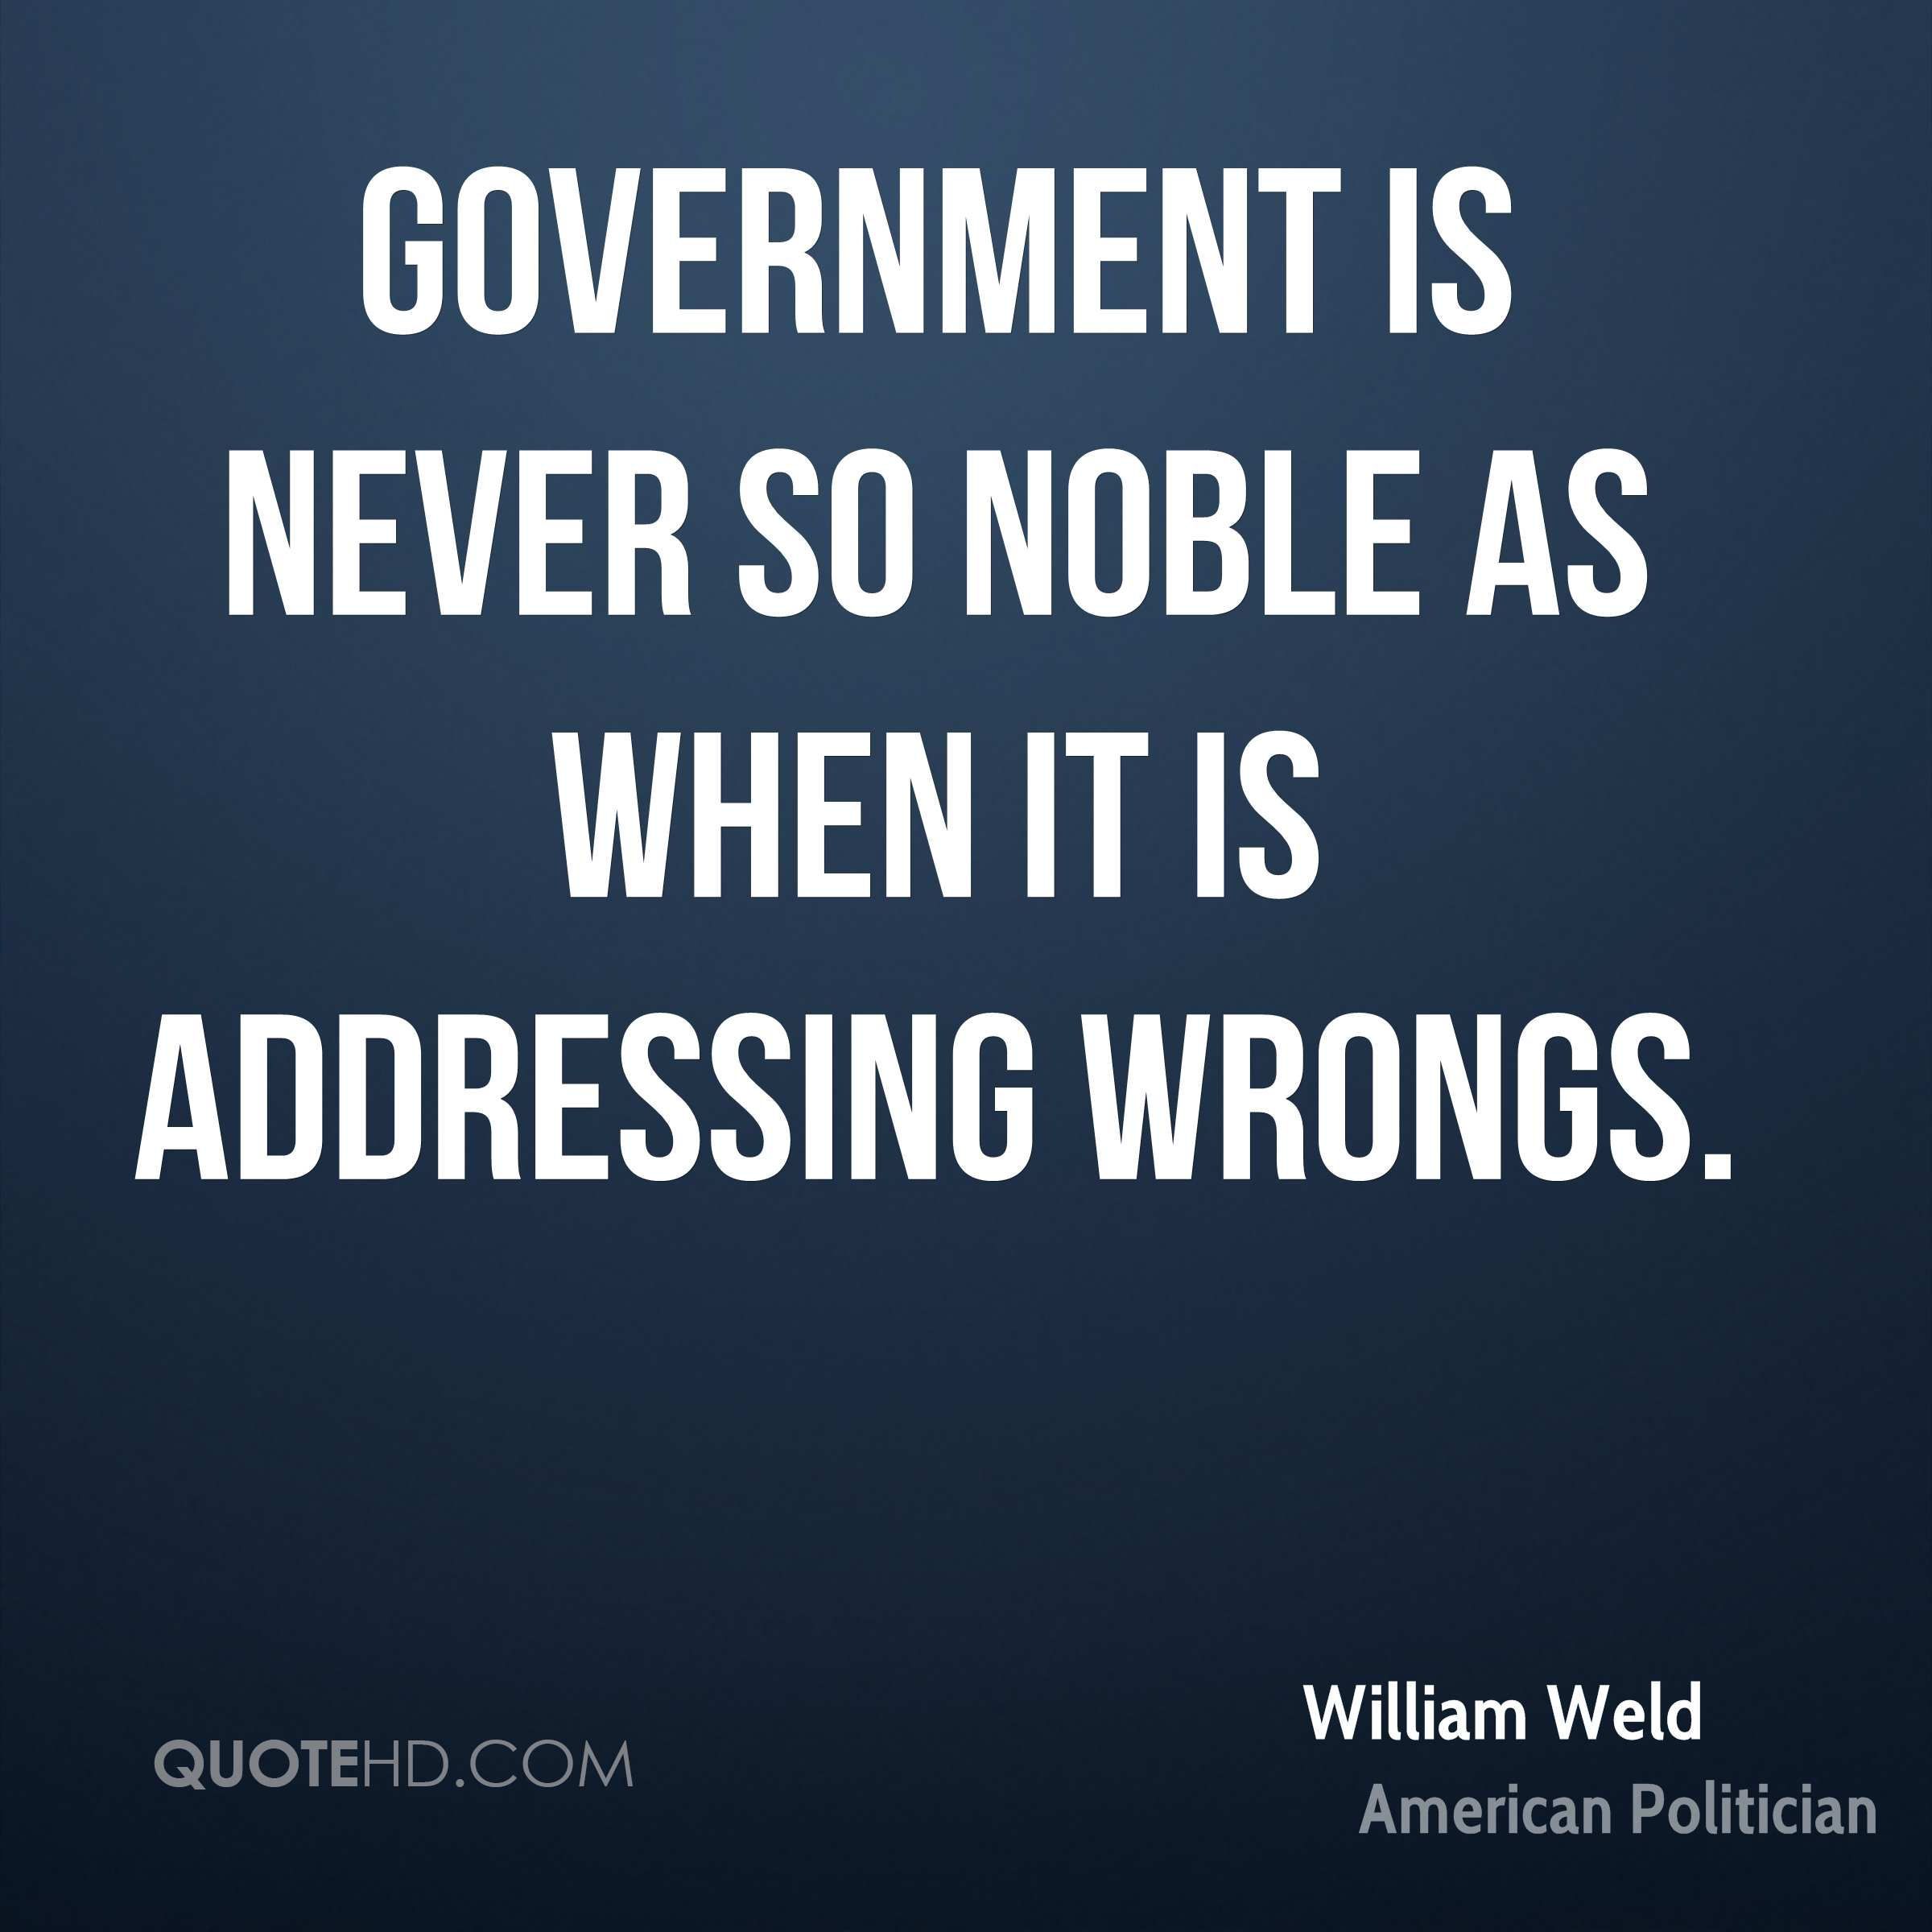 Government is never so noble as when it is addressing wrongs.